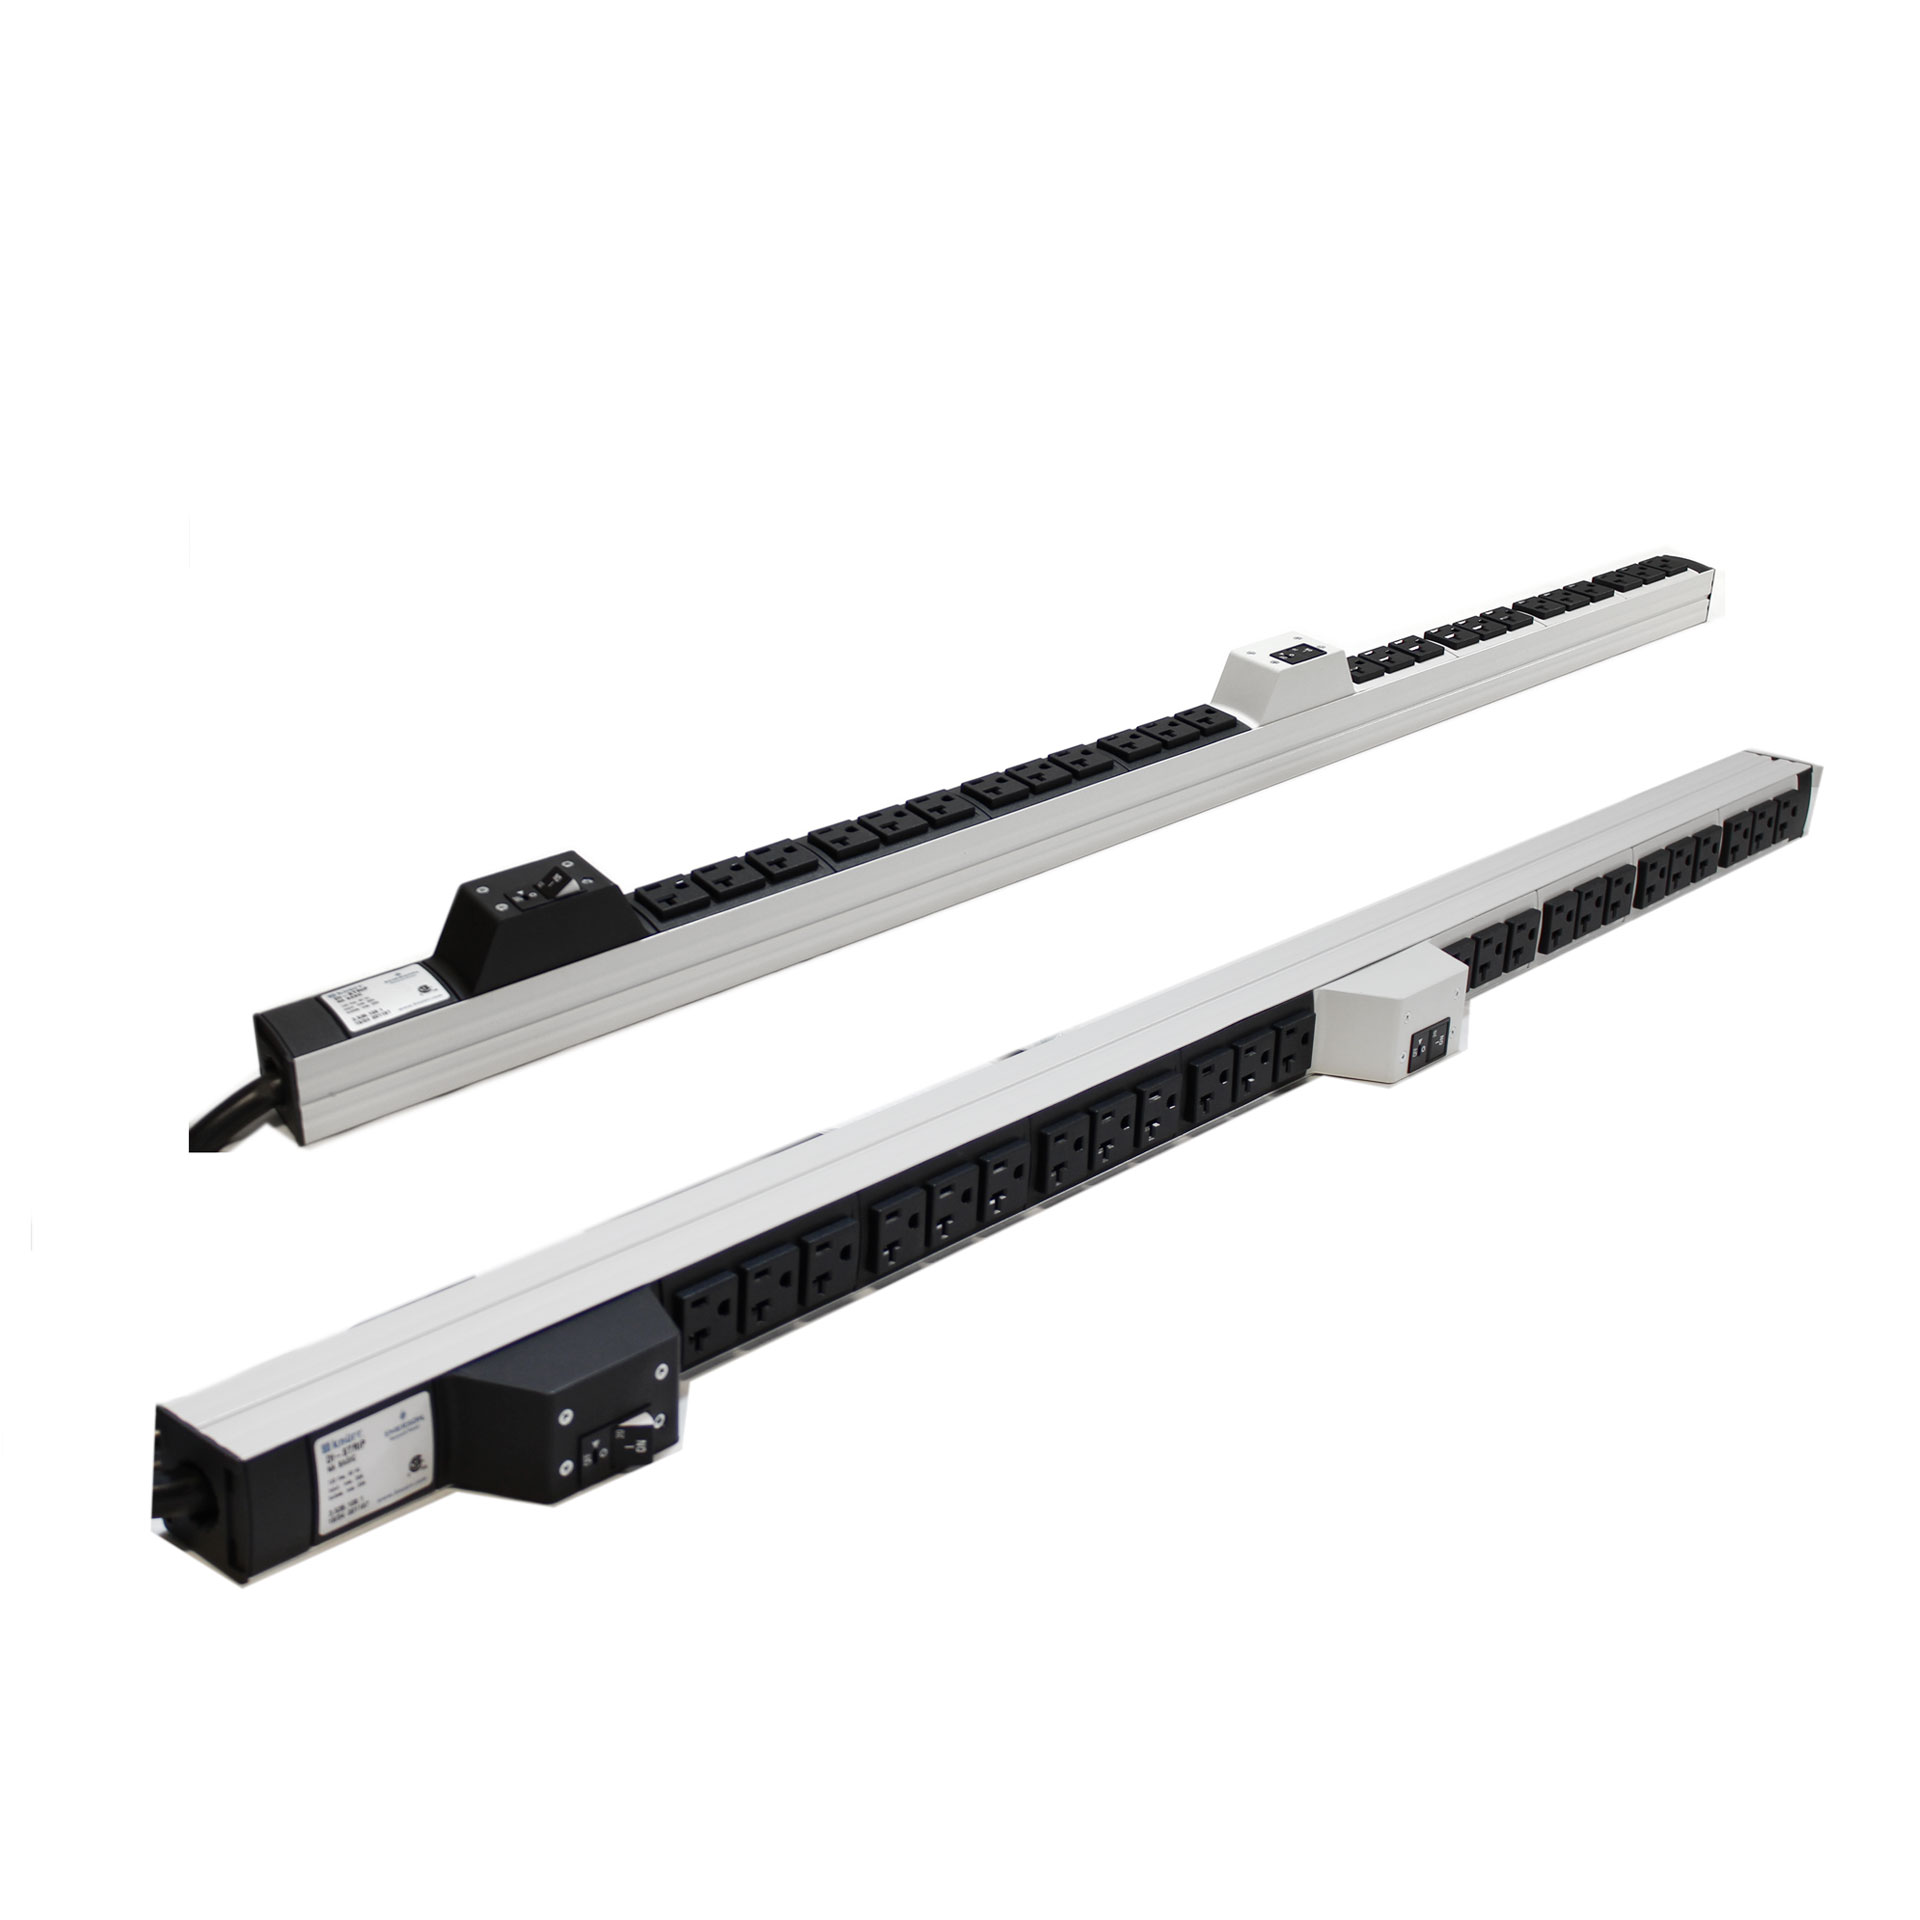 Emerson Knurr DI-STRIP 24-Outlets PDU 120 V AC Single-phase